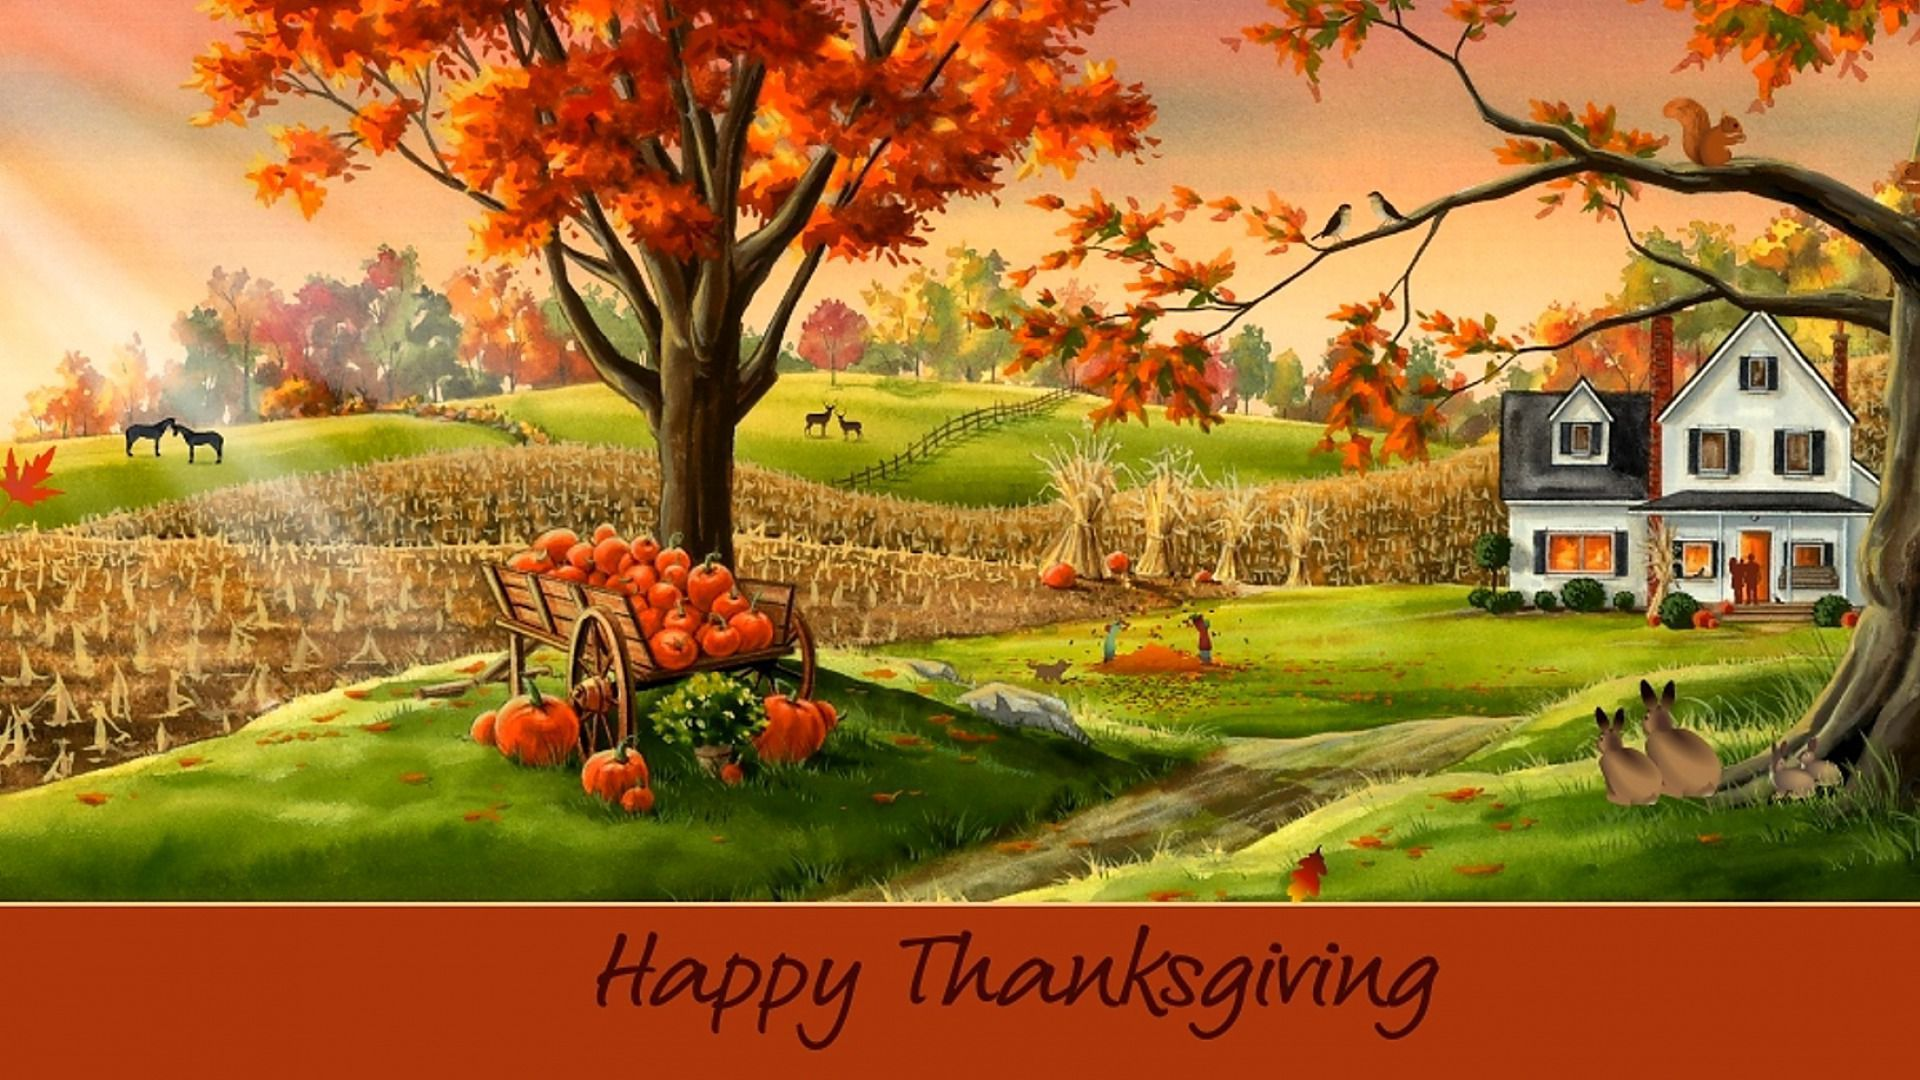 Happy Thanksgiving Hd Wallpaper Free Thanksgiving Wallpaper Thanksgiving Wallpaper Thanksgiving Images